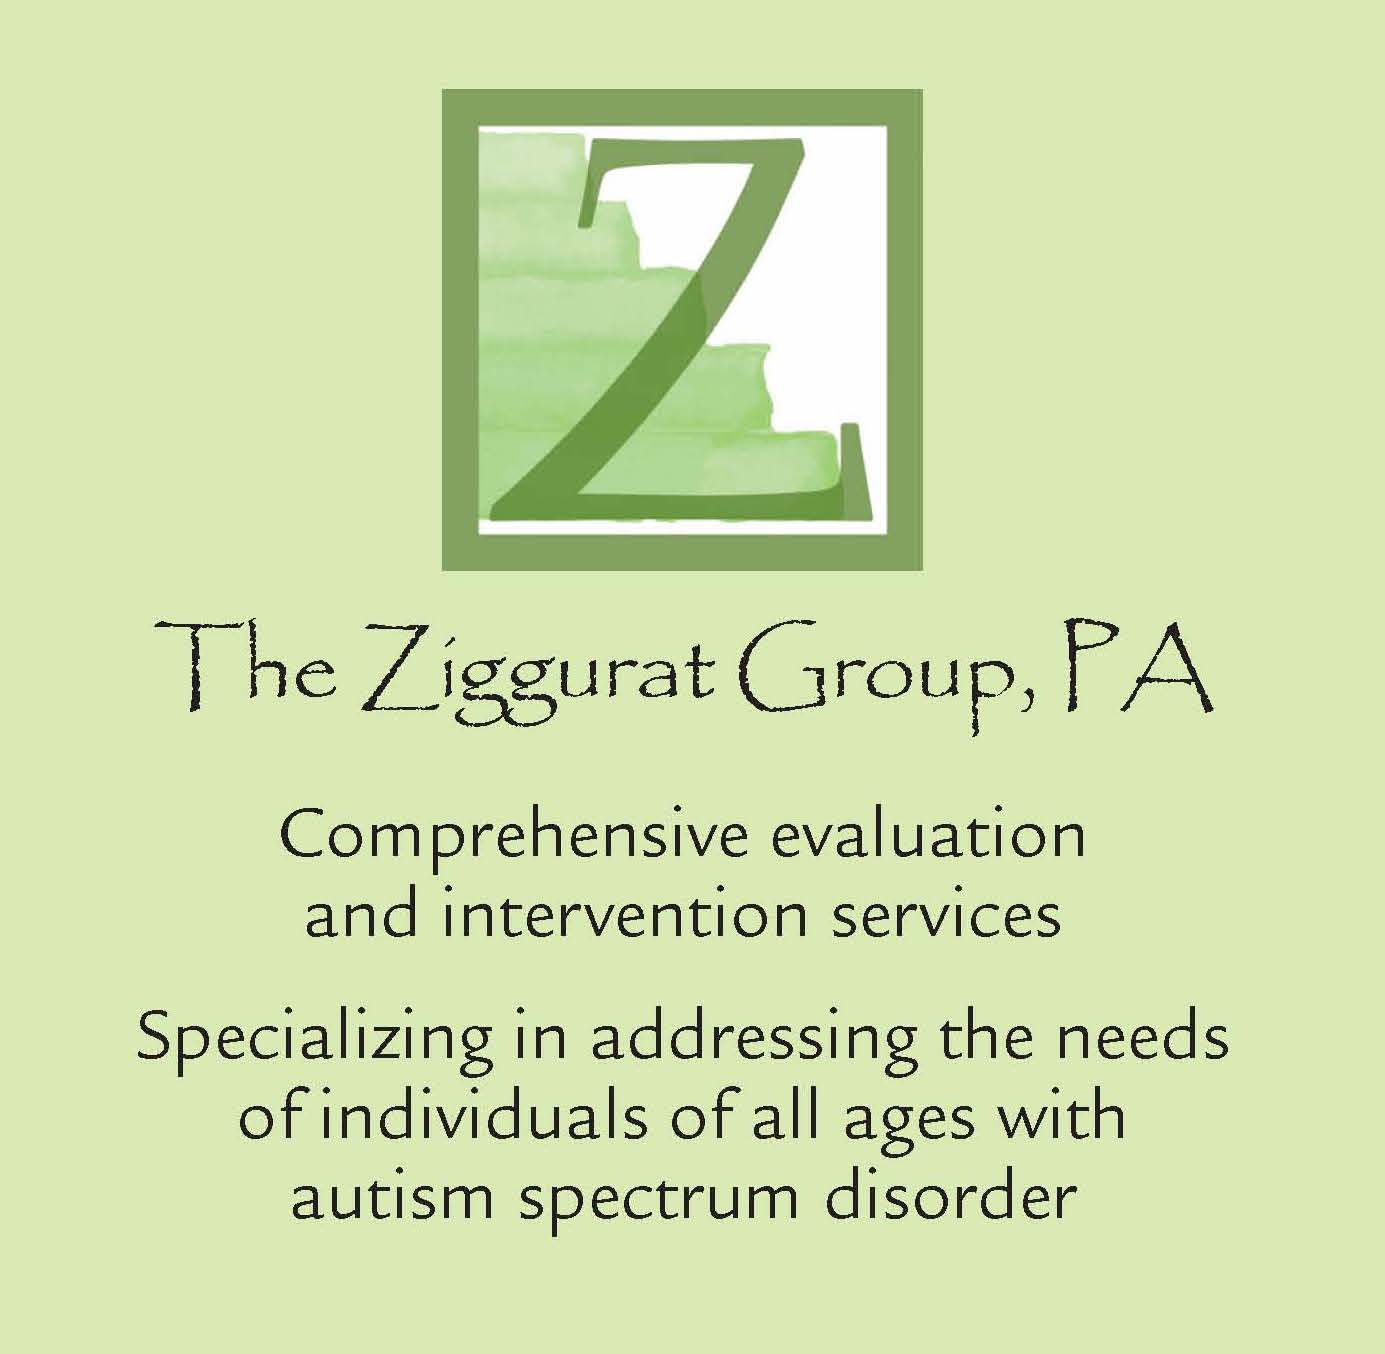 The Ziggurat Group: Comprehensive Evaluation  and intervention services for autism spectrum disorder